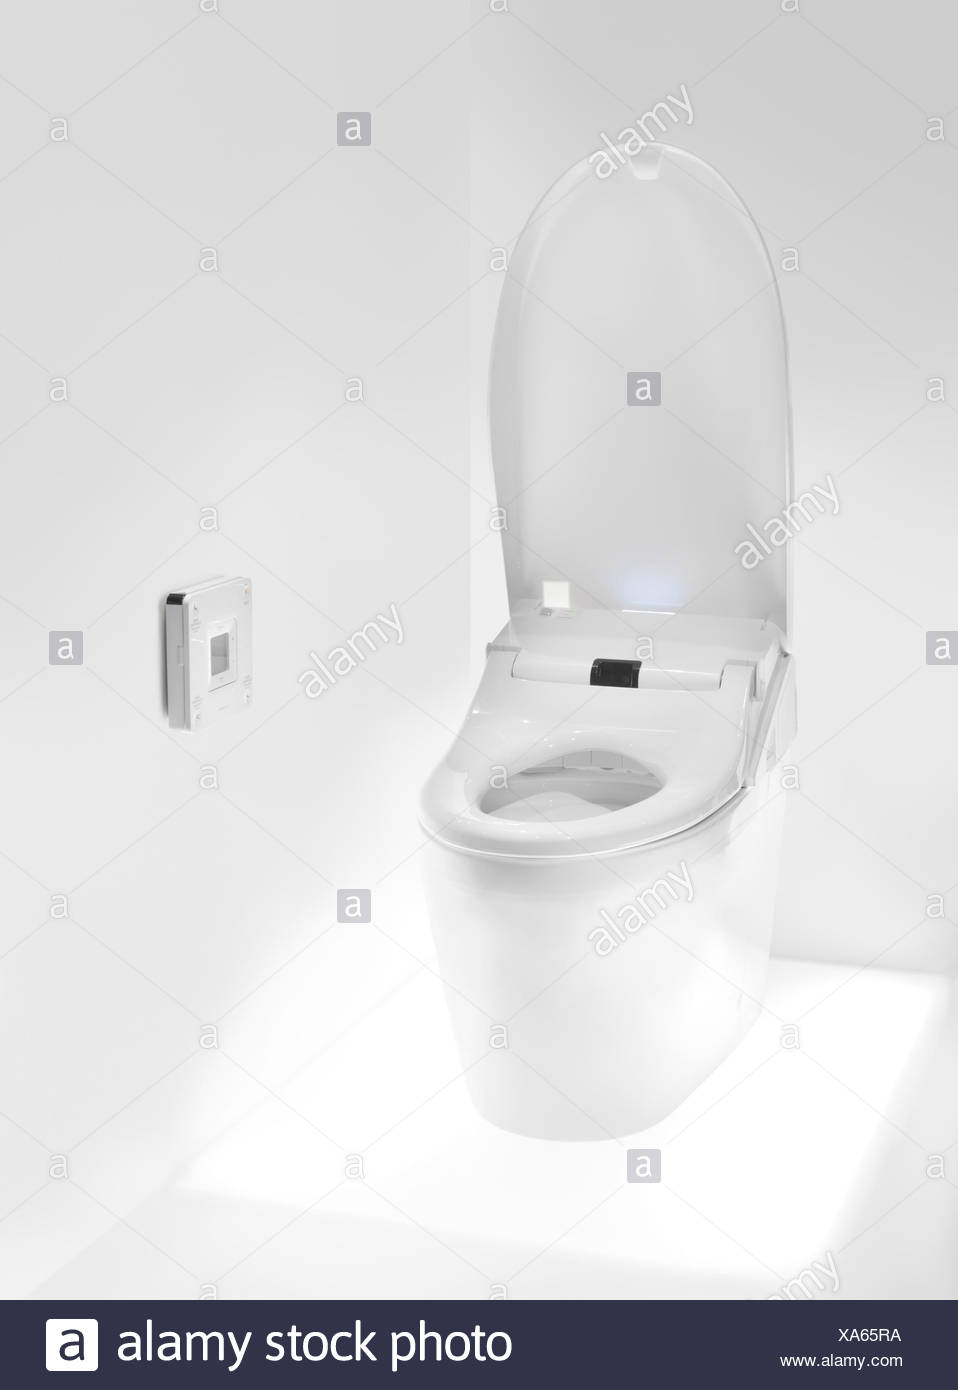 Toto toilet with Washlet seat, high-tech toilet with a remote ...